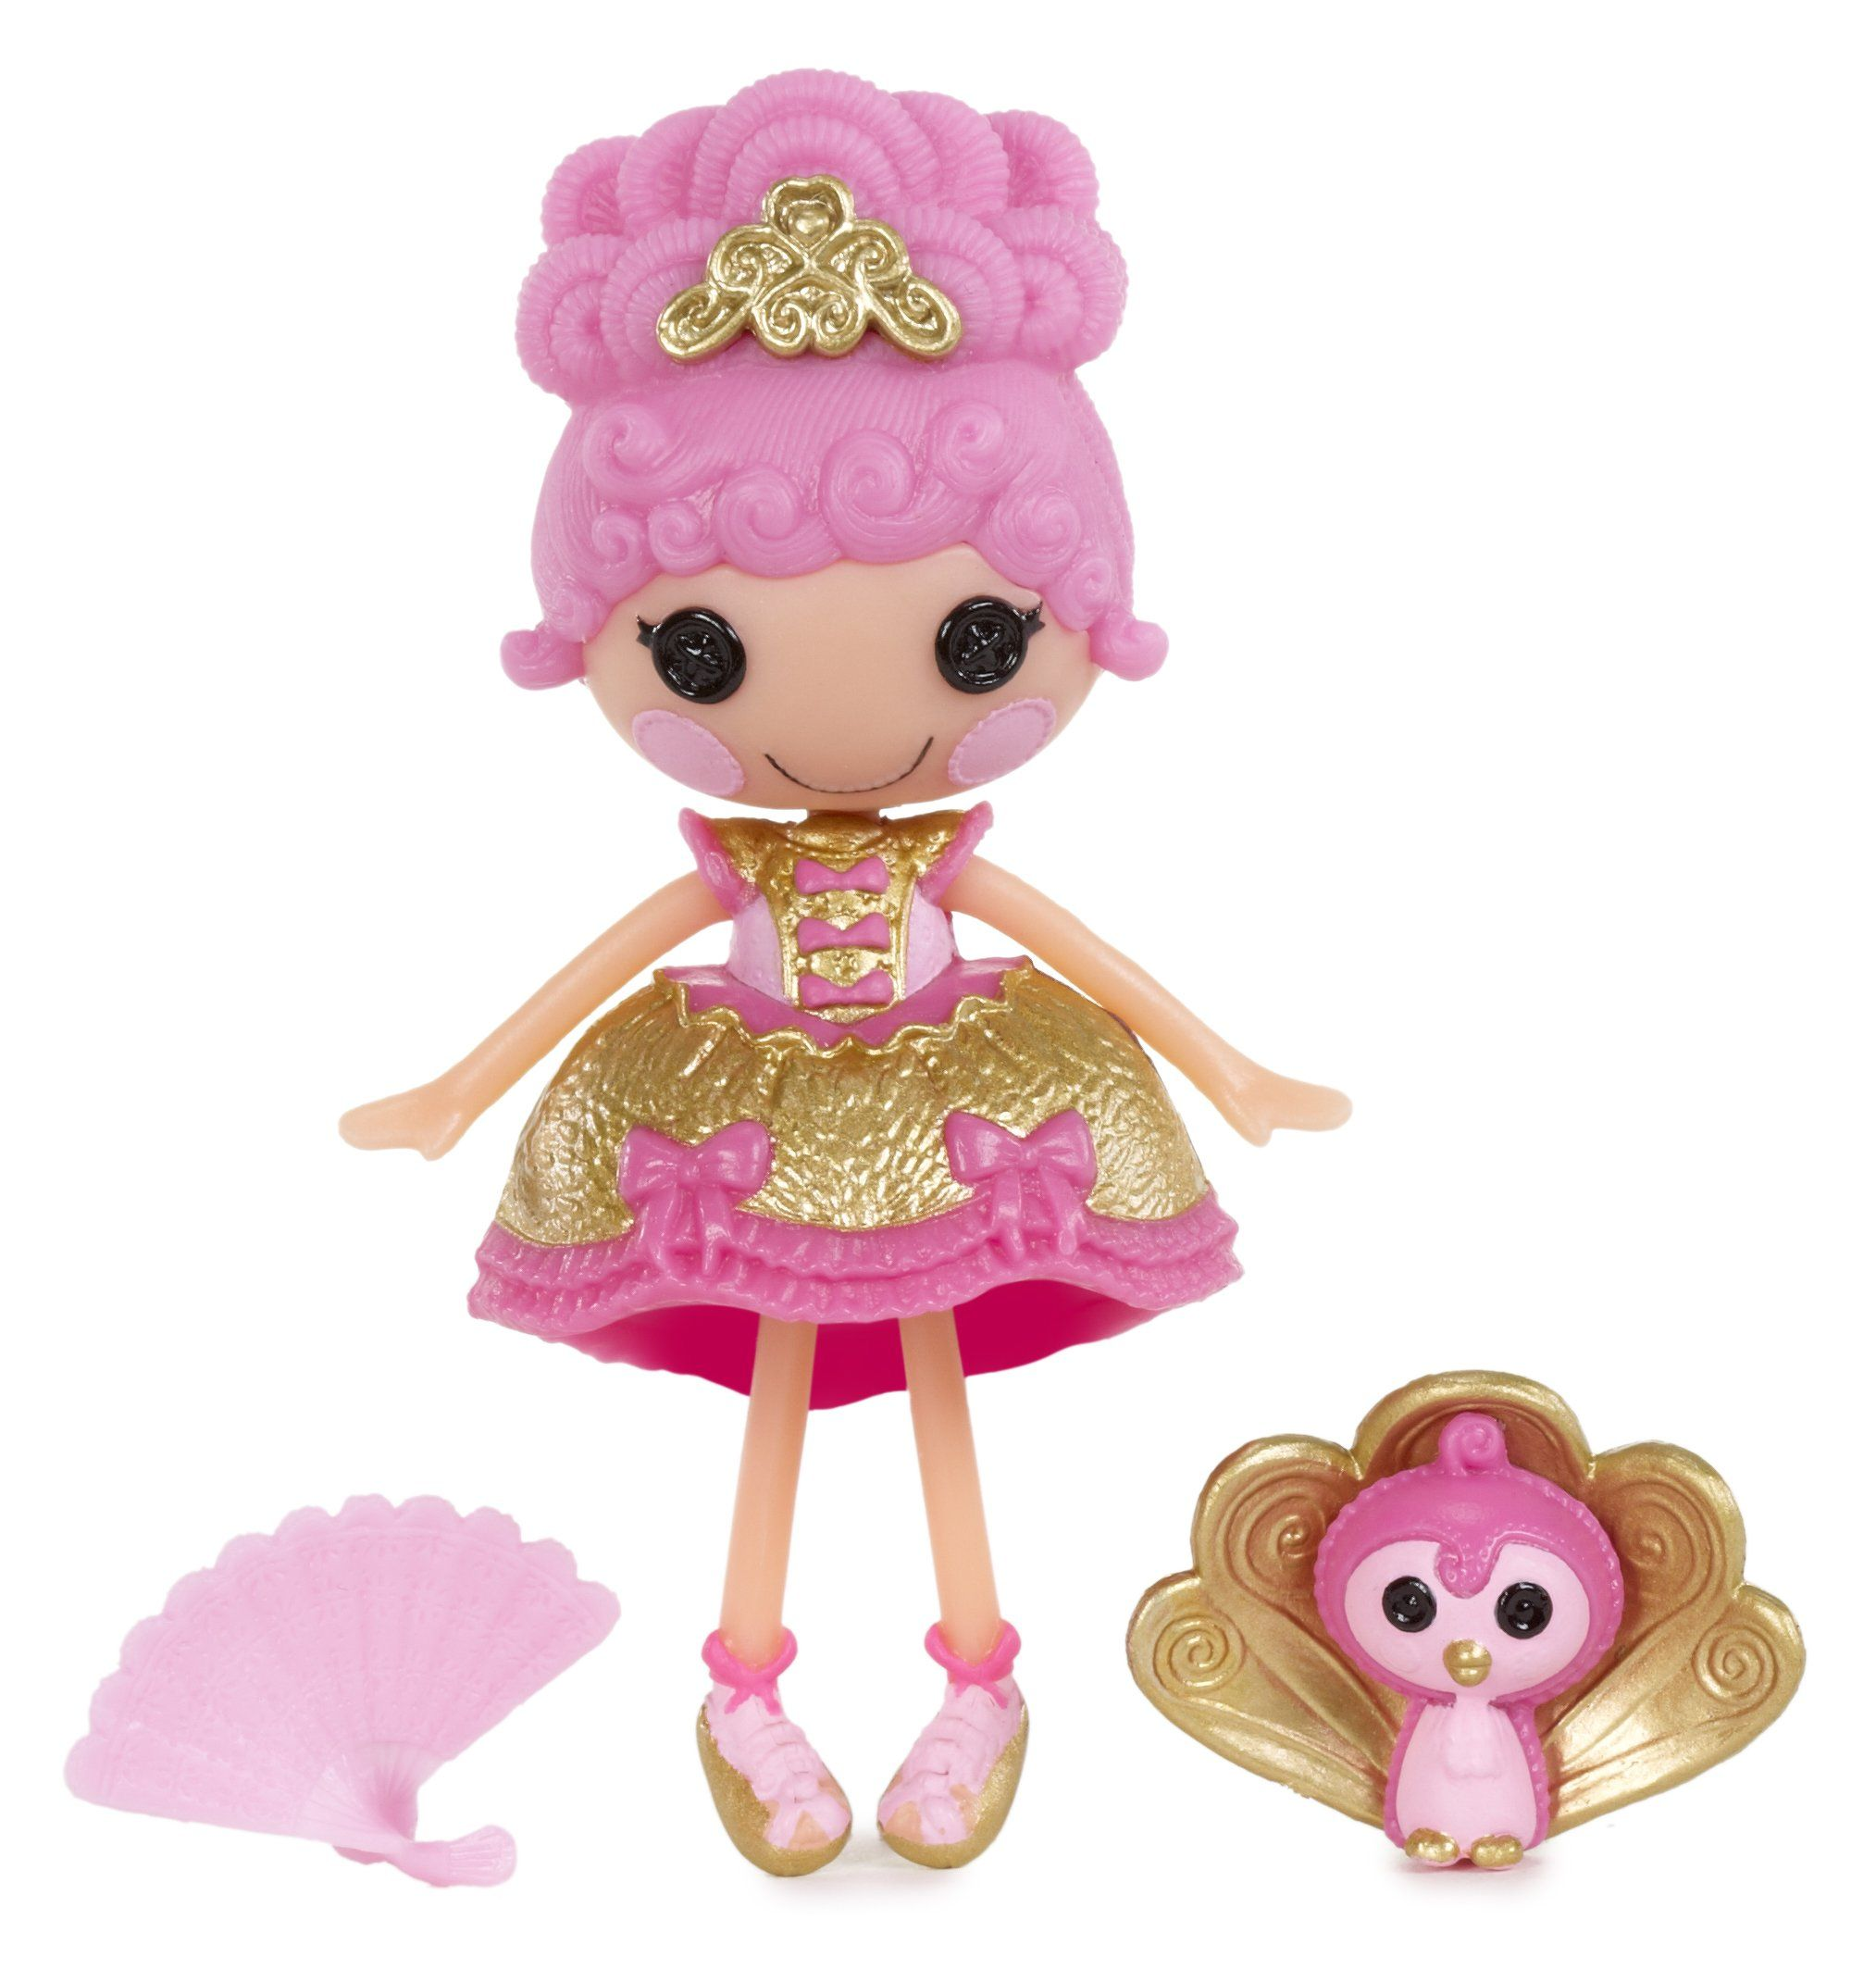 Lalaloopsy Mini Doll Goldie Luxe Lalaloopsy dolls